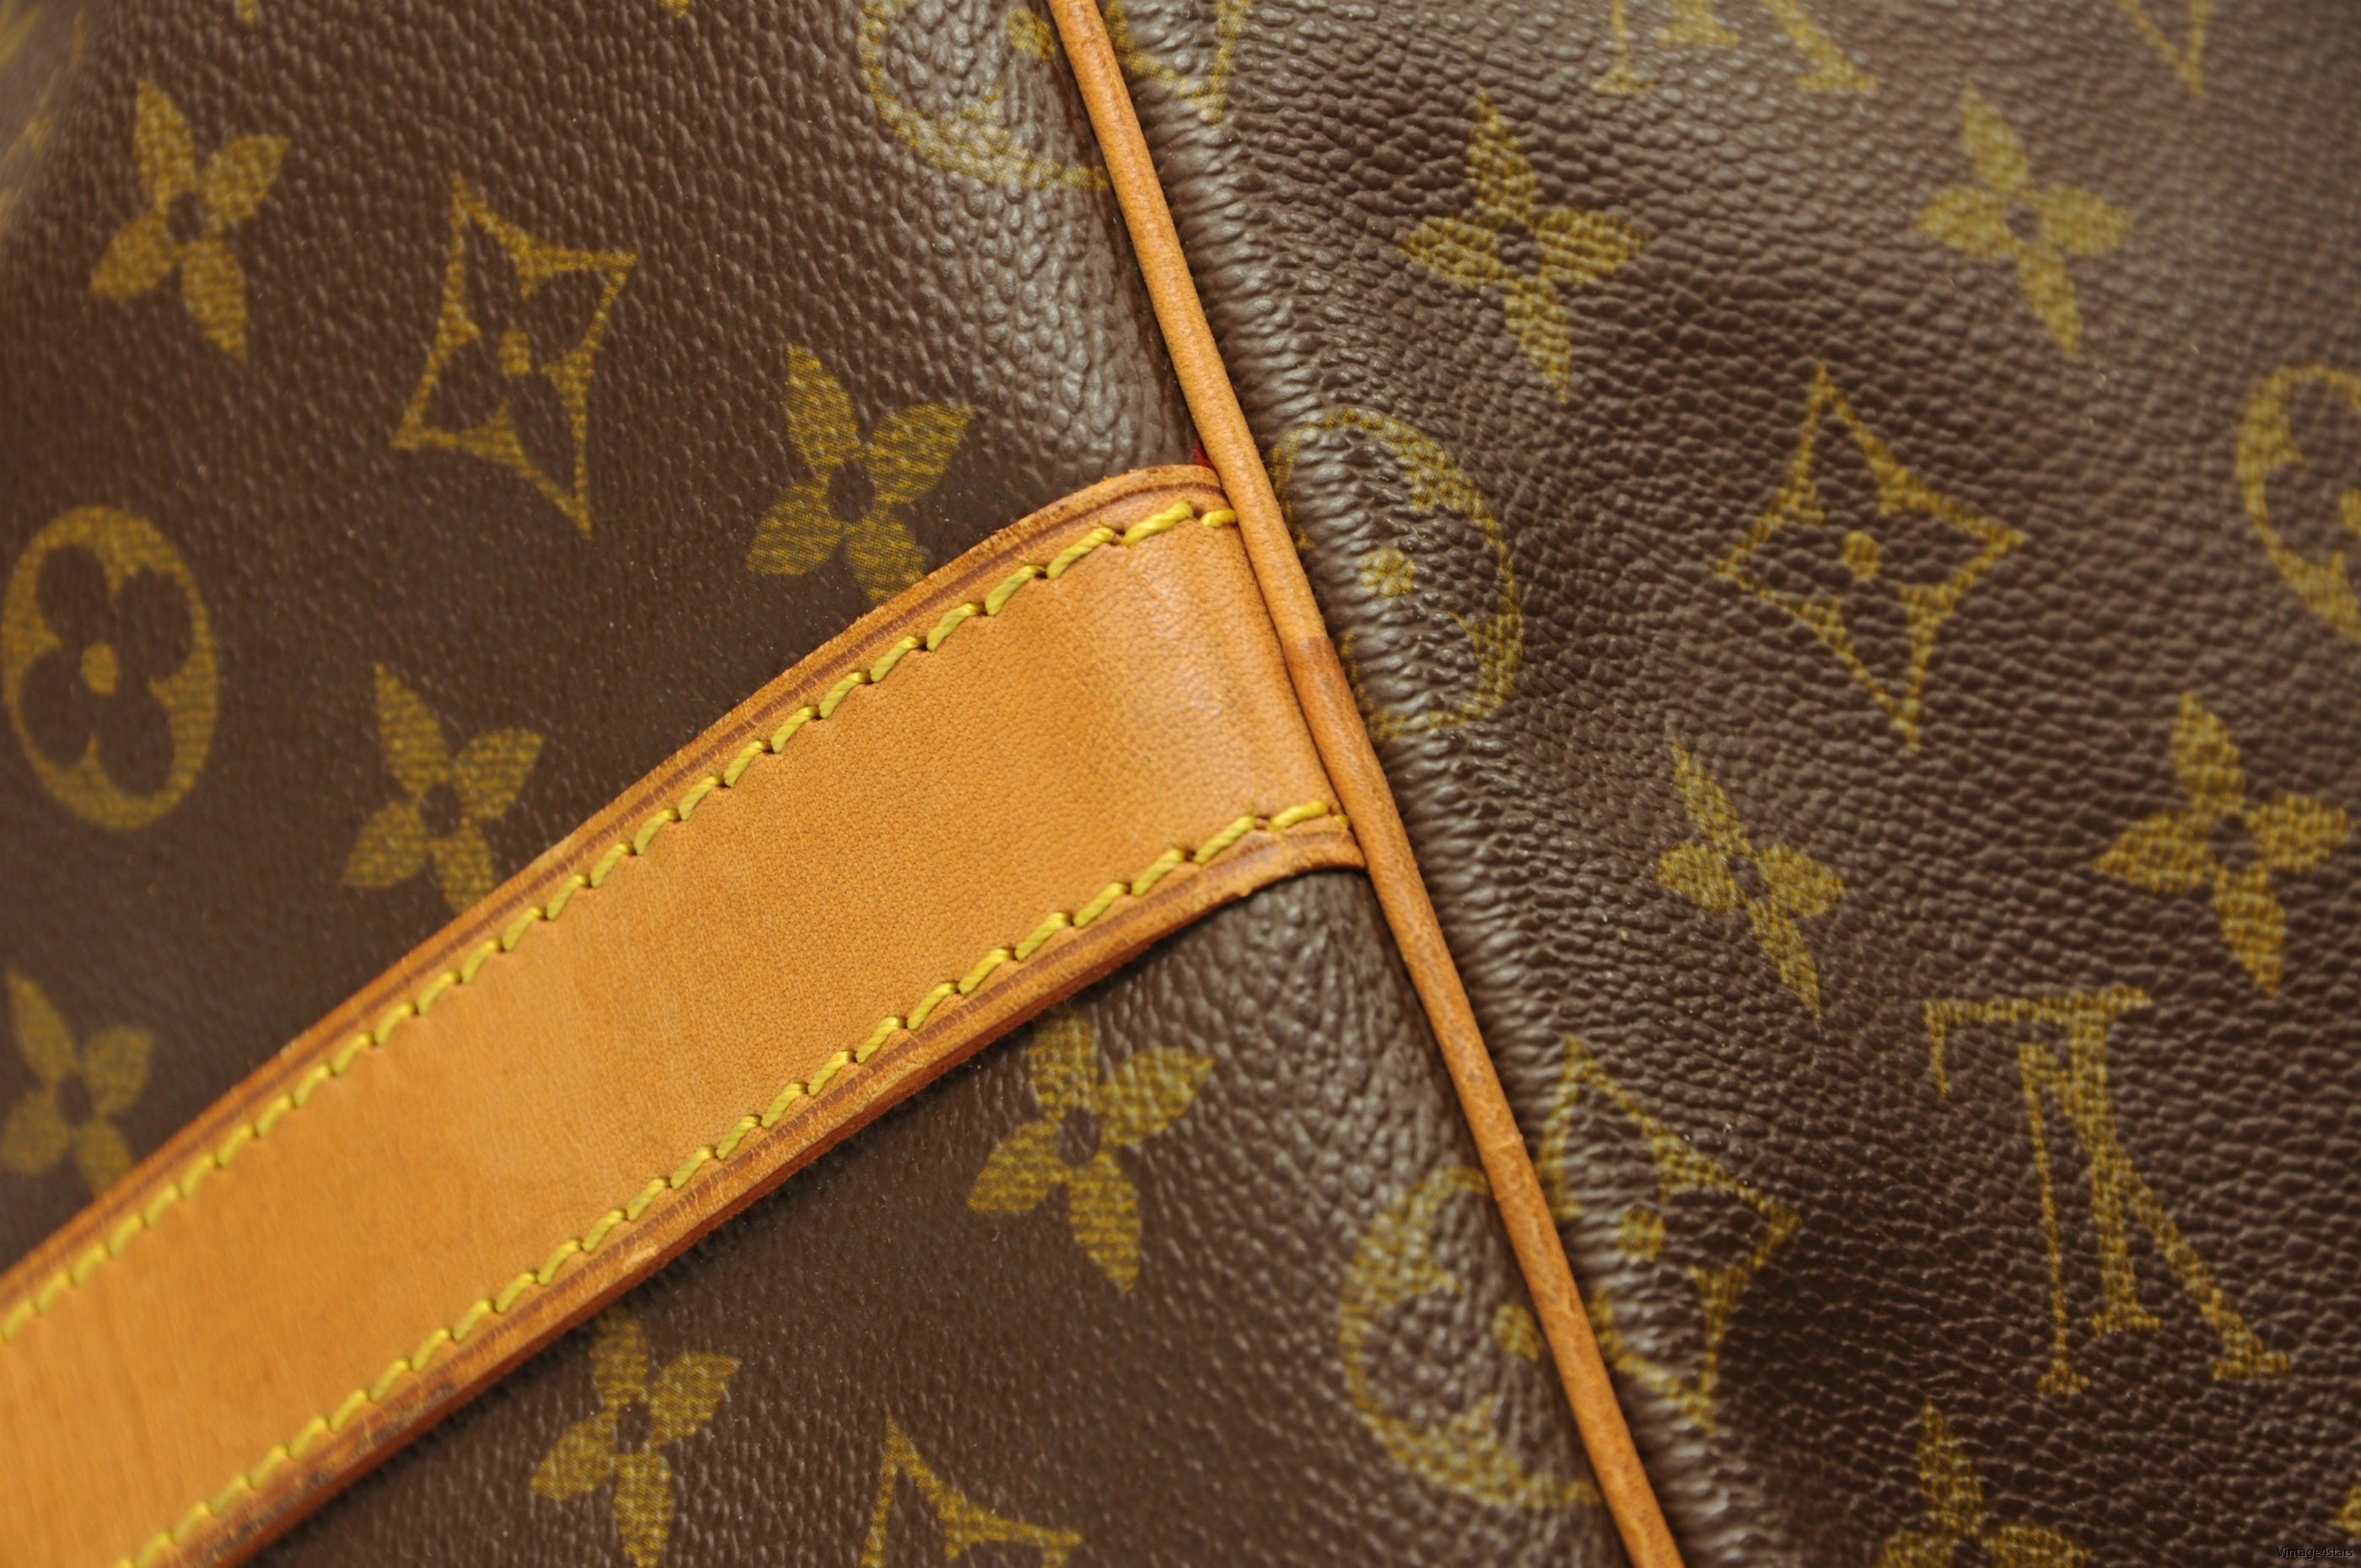 Louis Vuitton Keepall 55 Monogram 9